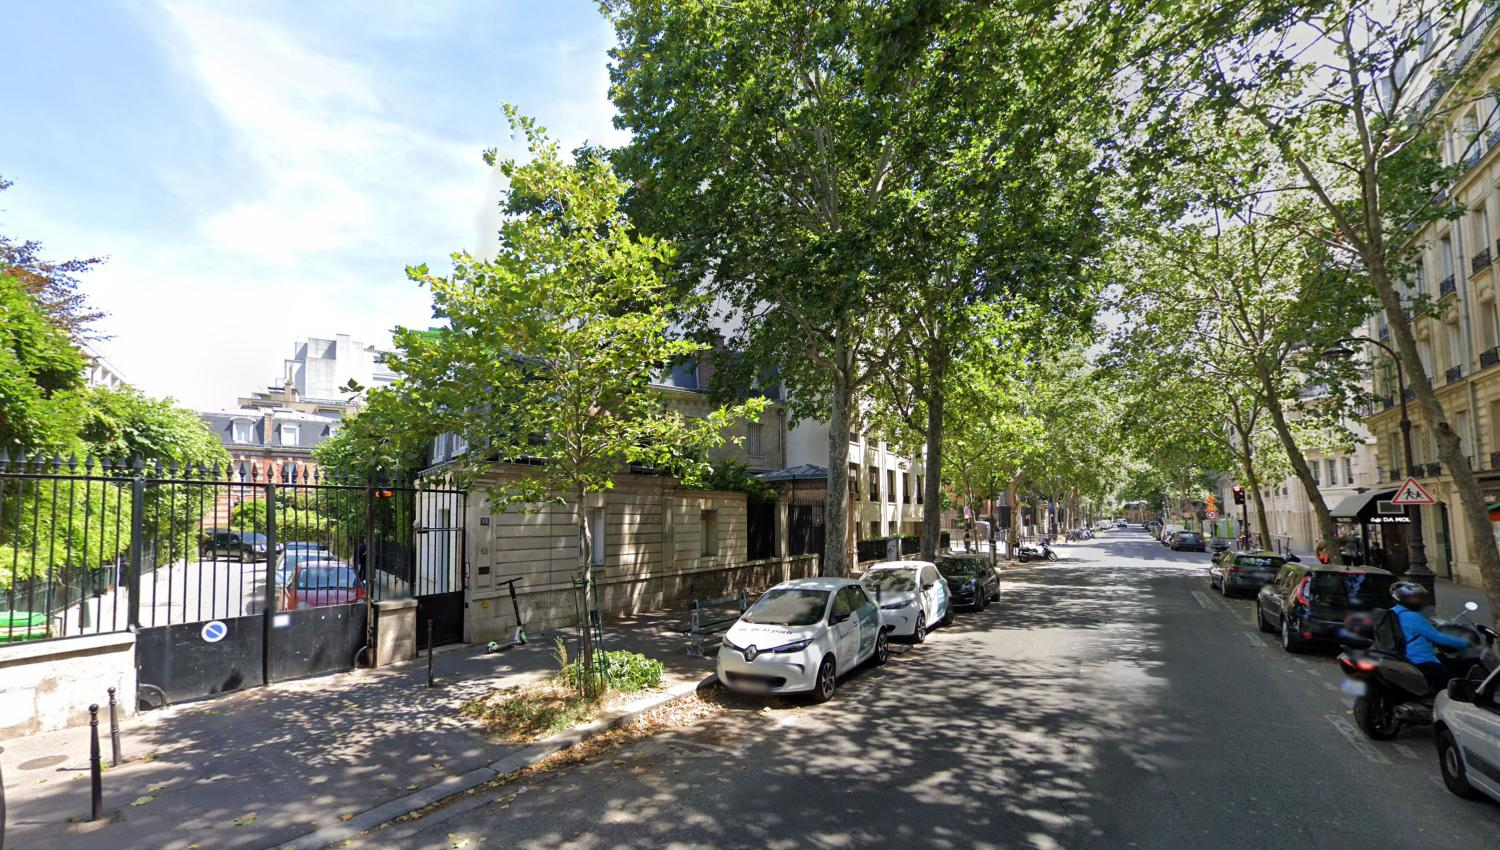 RESIDENTIAL AREA IN PARIS